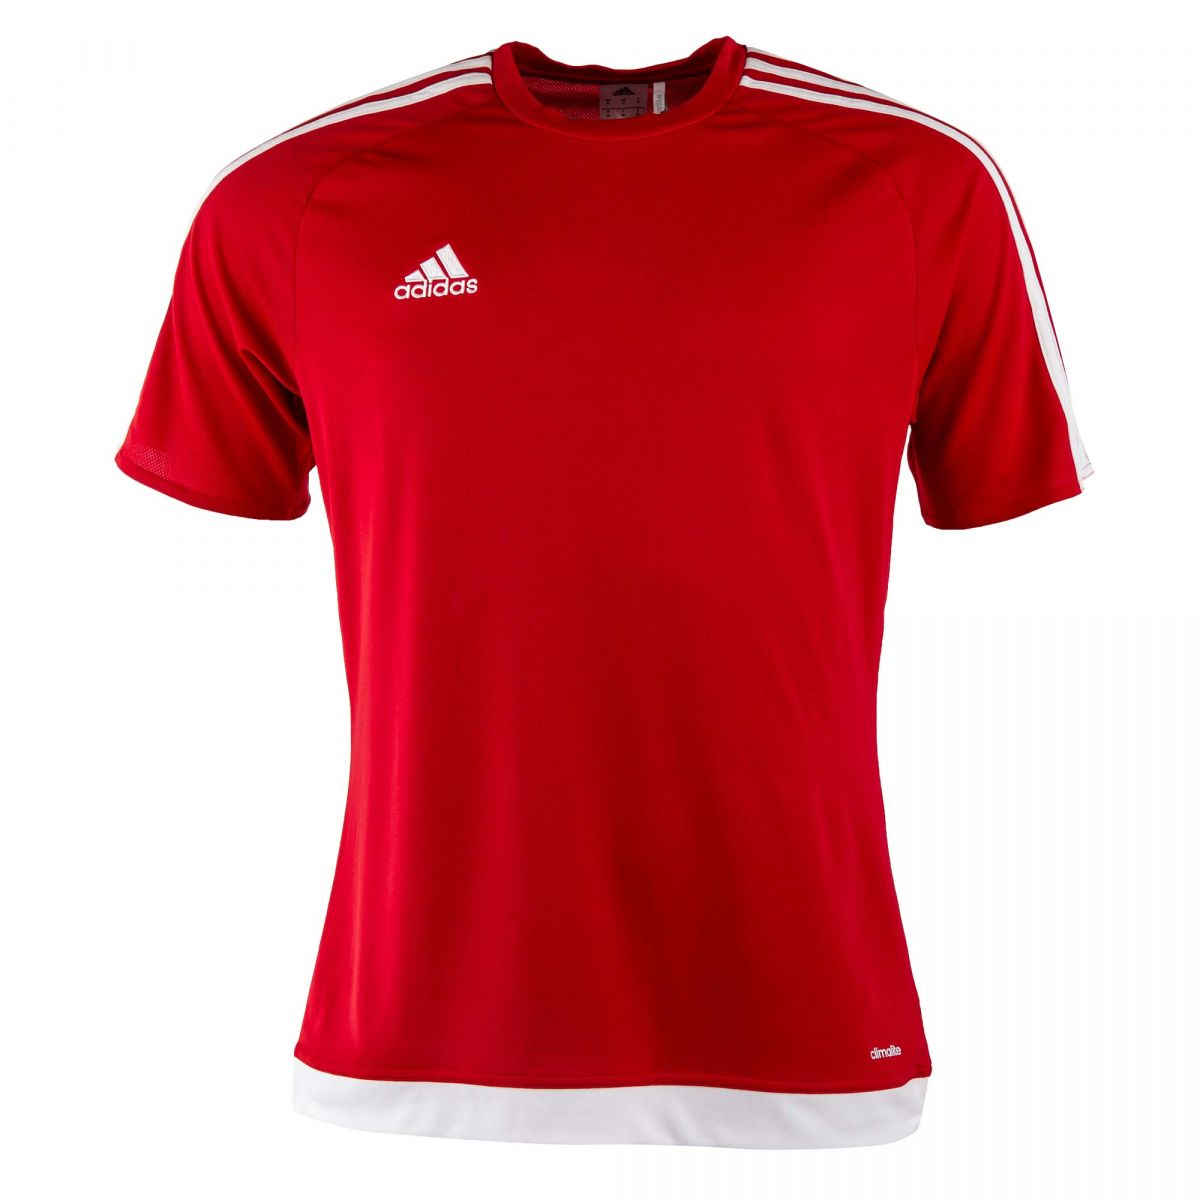 15 Estro À Football S16149 Shirt Maillot Adidas Tee Climalite Homme H2YWD9IE